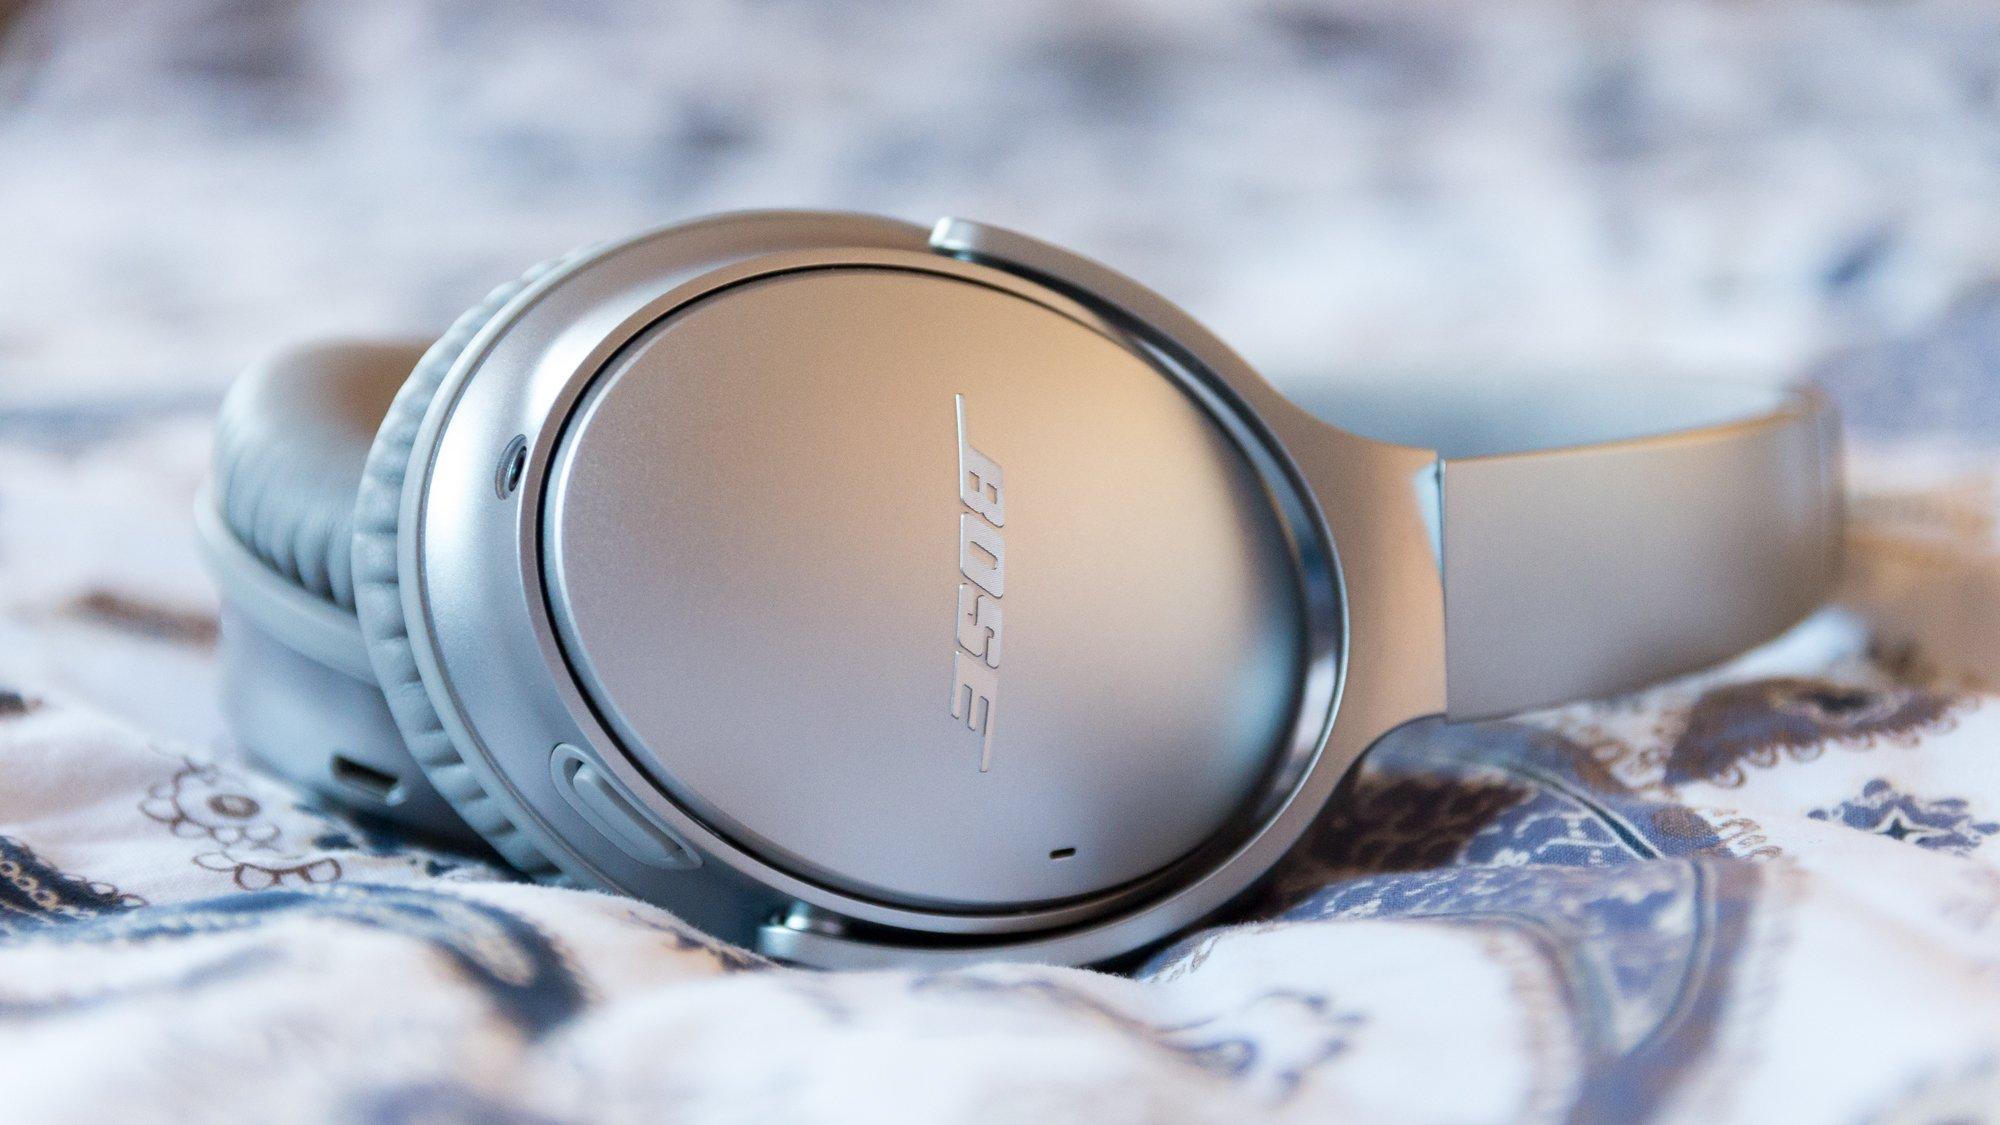 Bose quietcomfort 35 (series i wireless headphones noise cancelling black review